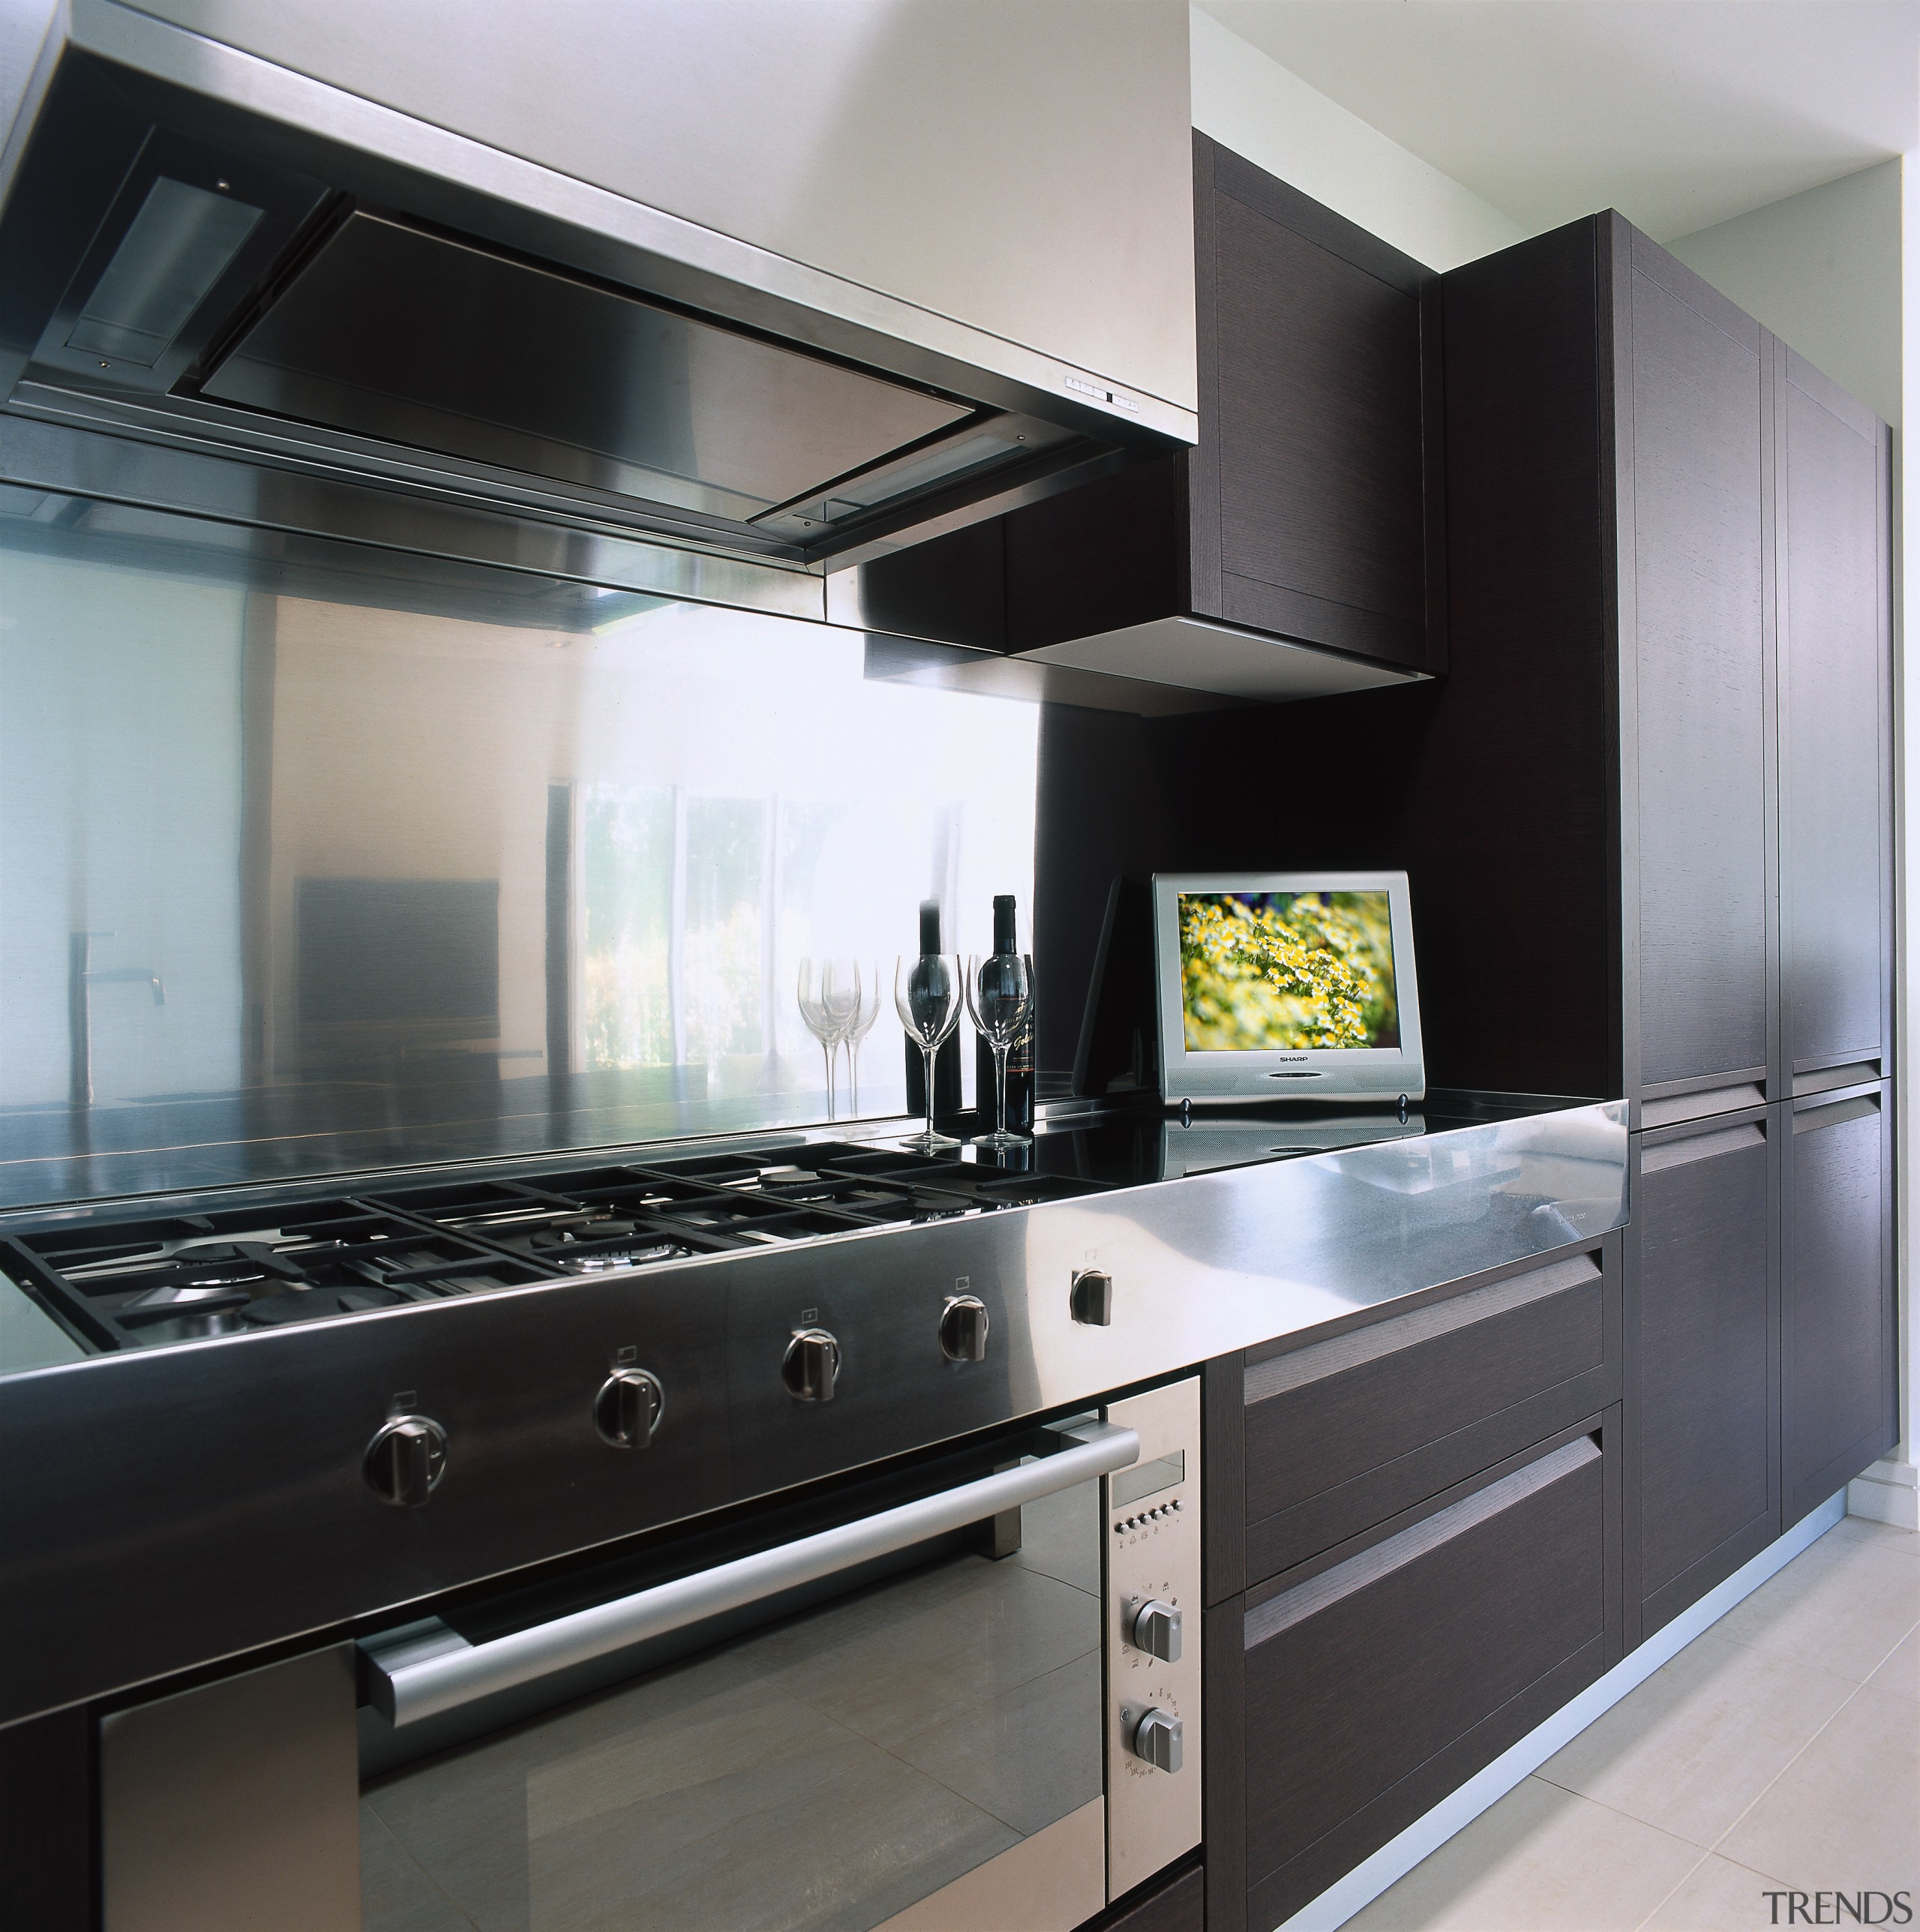 view of this sharp 15 inch lcd television cabinetry, countertop, cuisine classique, home appliance, interior design, kitchen, kitchen appliance, kitchen stove, major appliance, gray, black